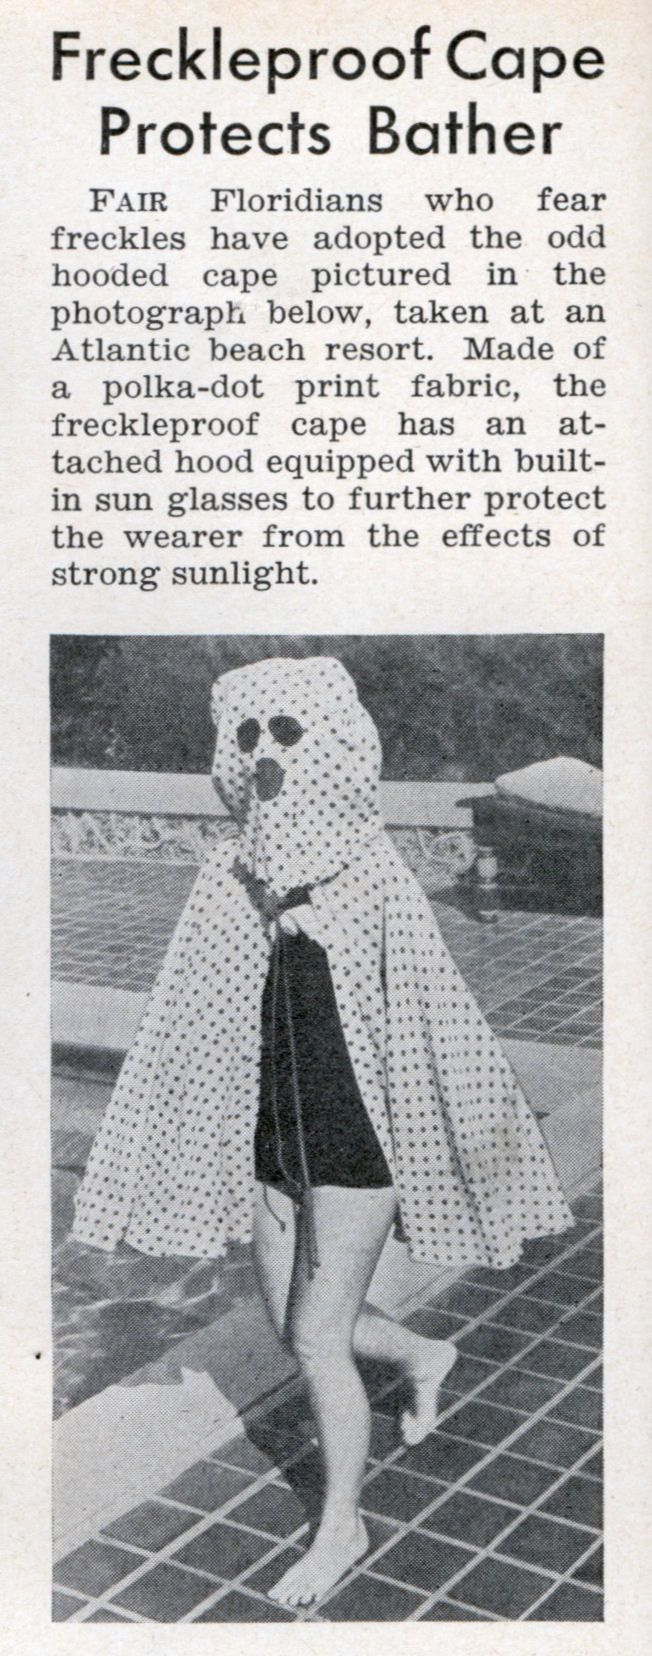 Beach resort wear: Freckleproof Cape Protects Bather, Modern Mechanix, 1940